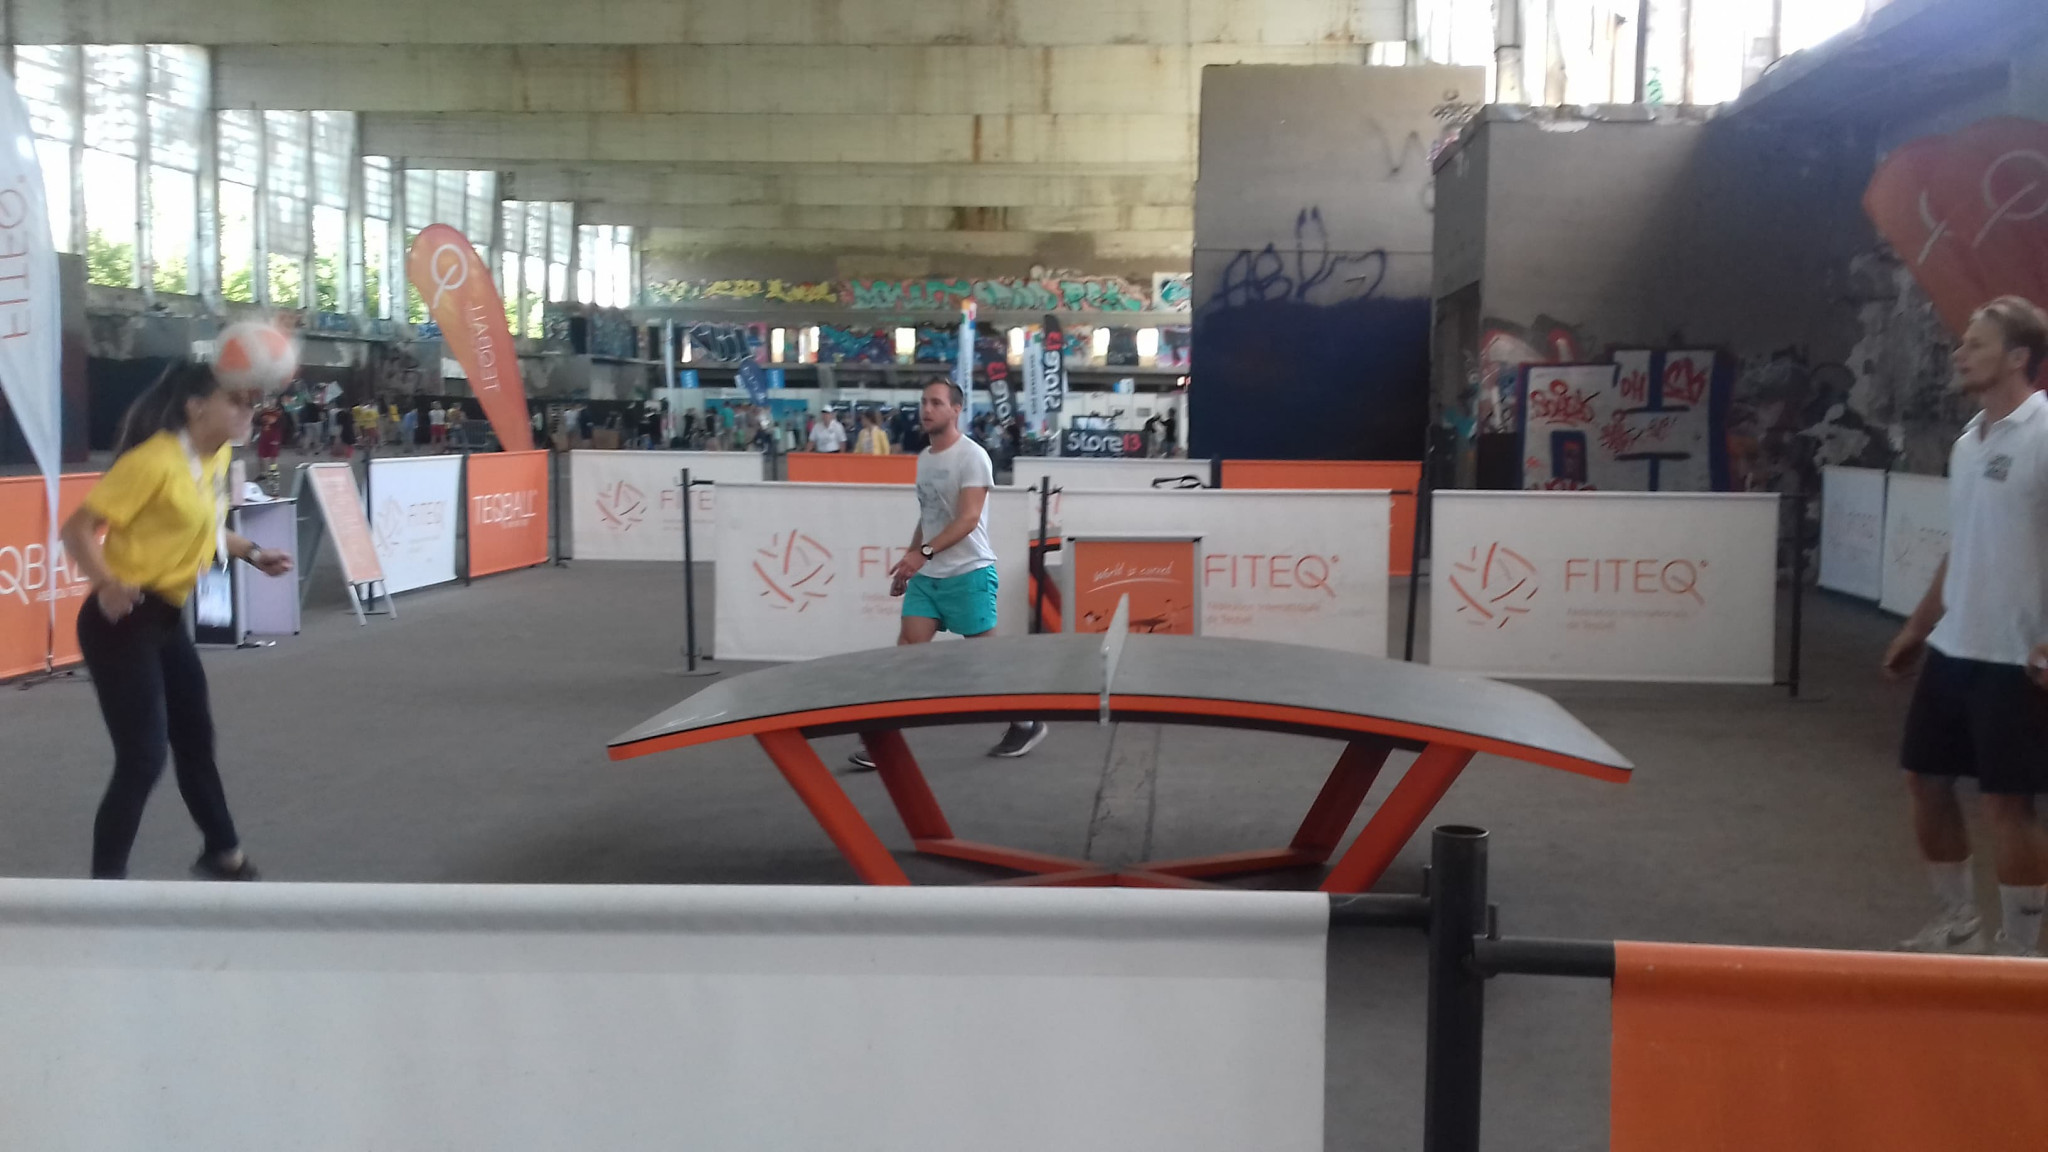 Teqball was demonstrated at the World Urban Games in Budapest ©ITG